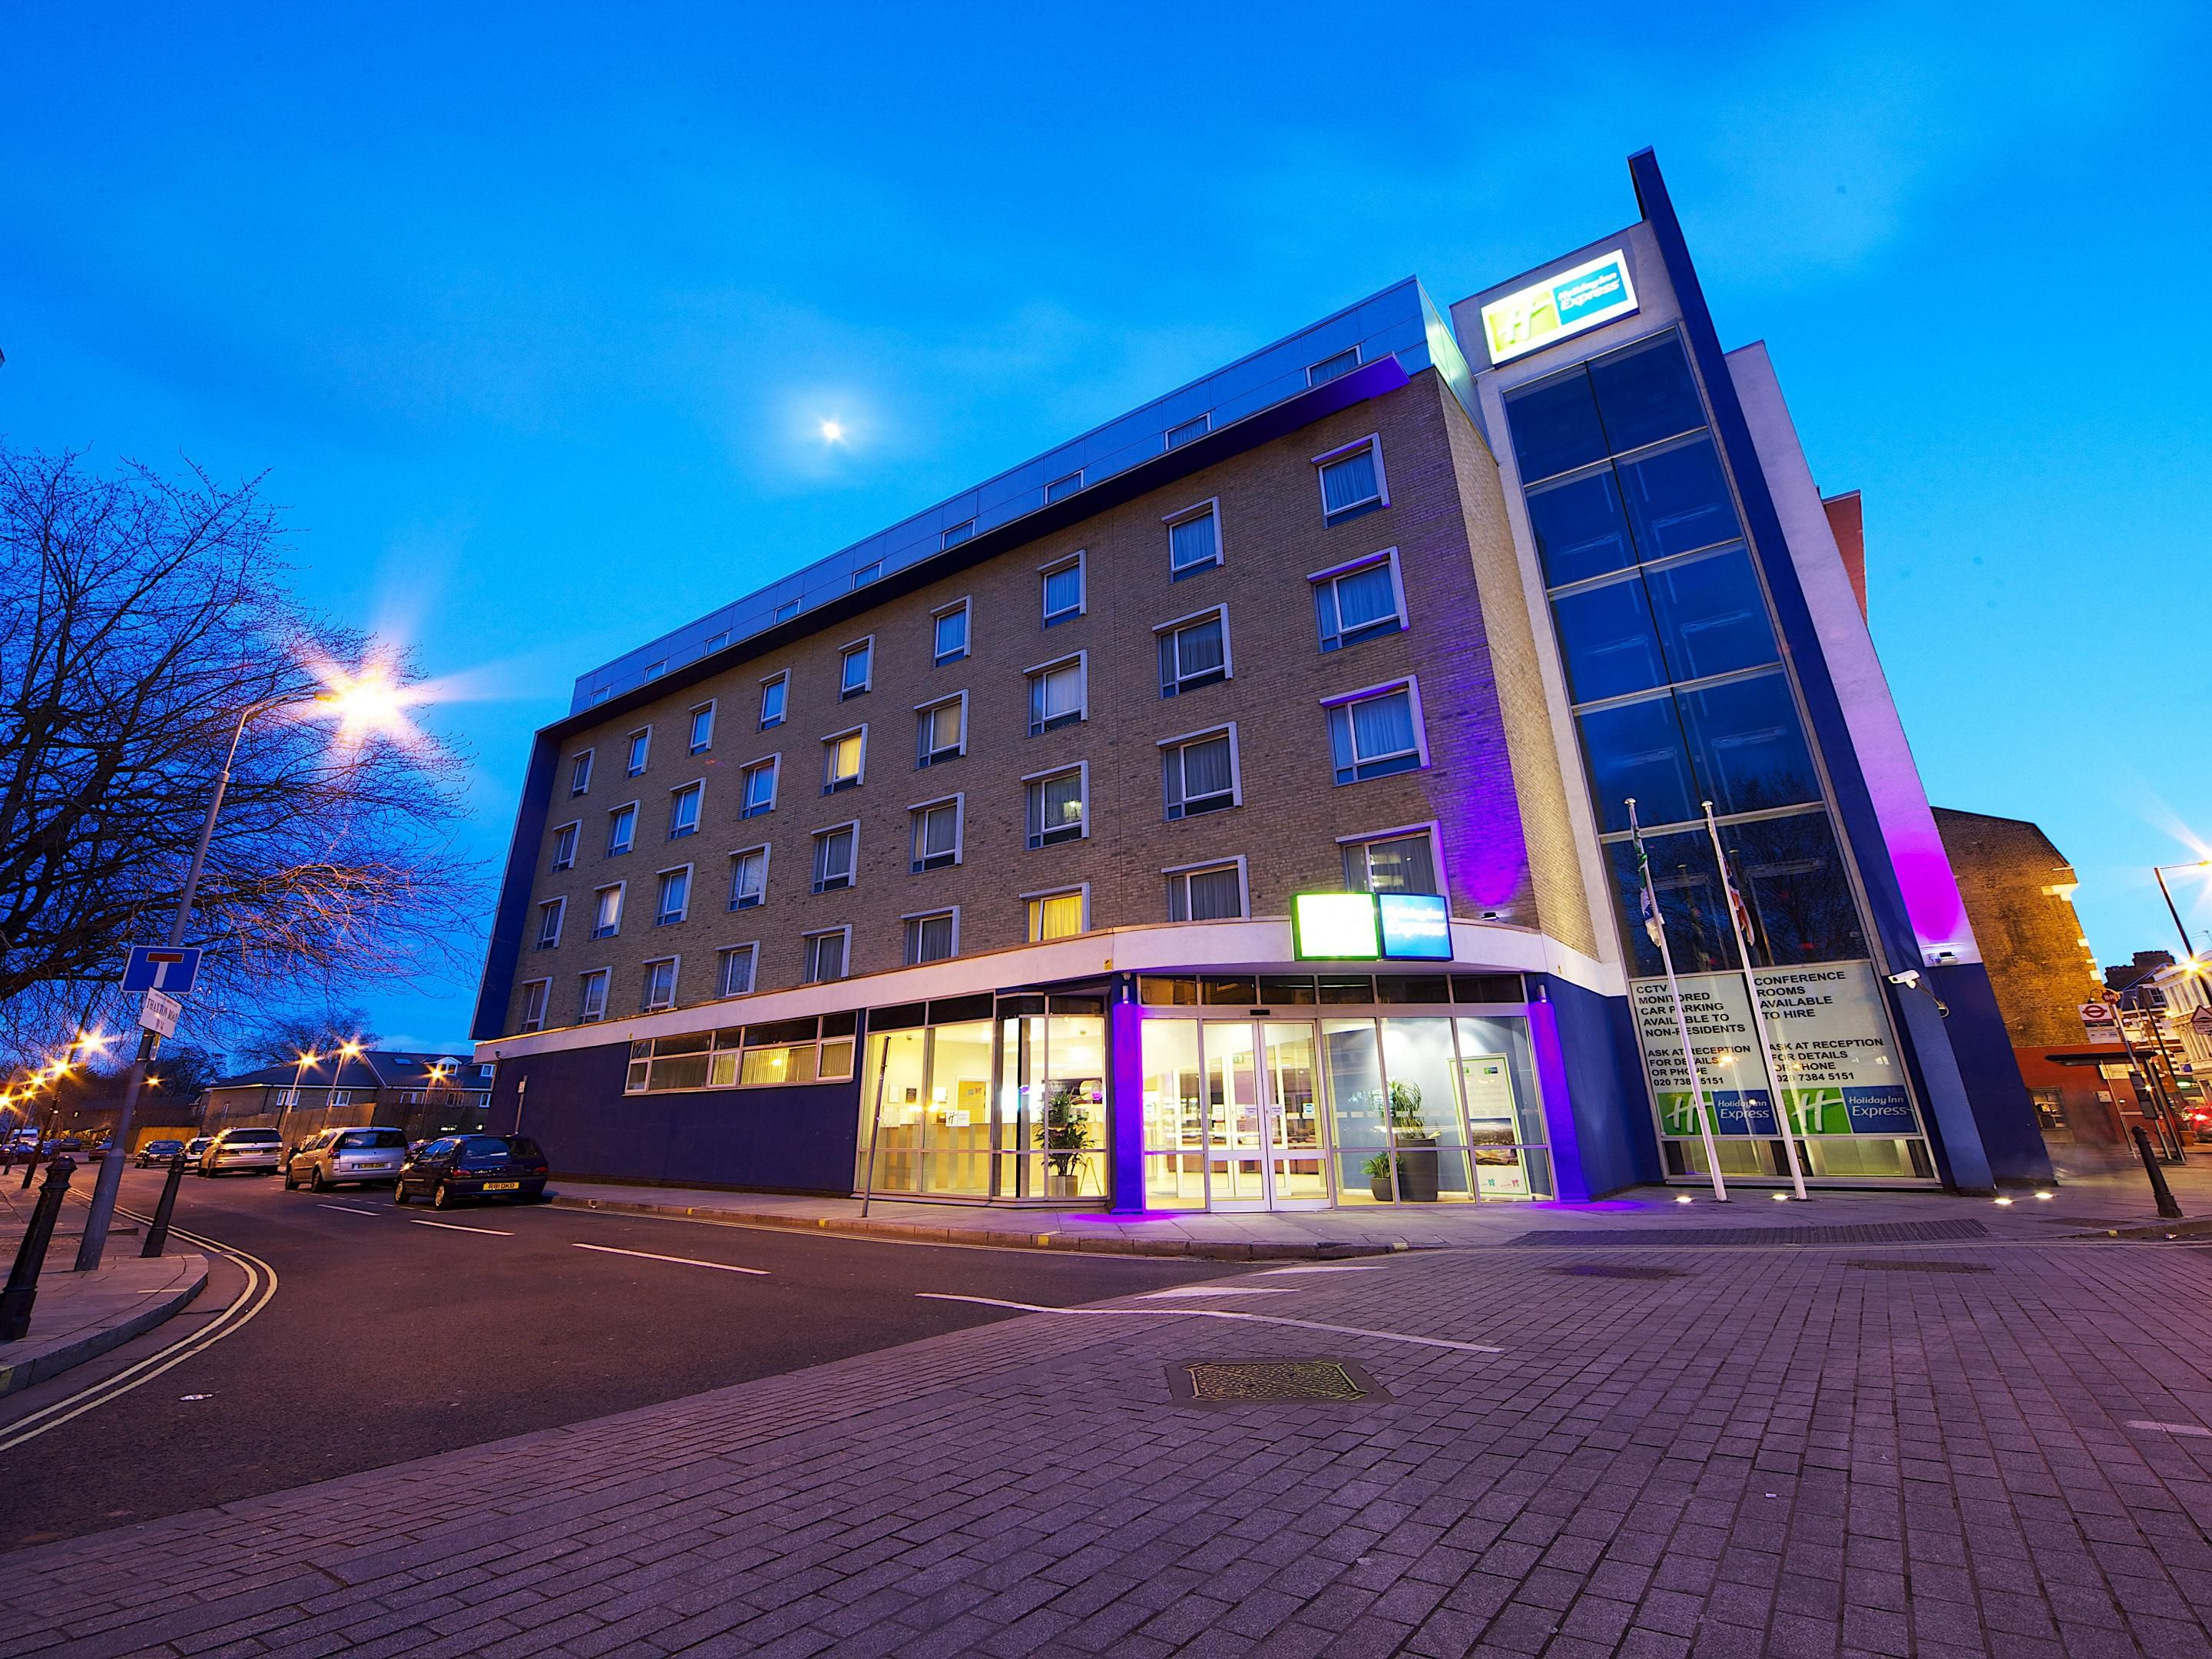 Holiday Inn Express - London Earls Court - Hotel Ext